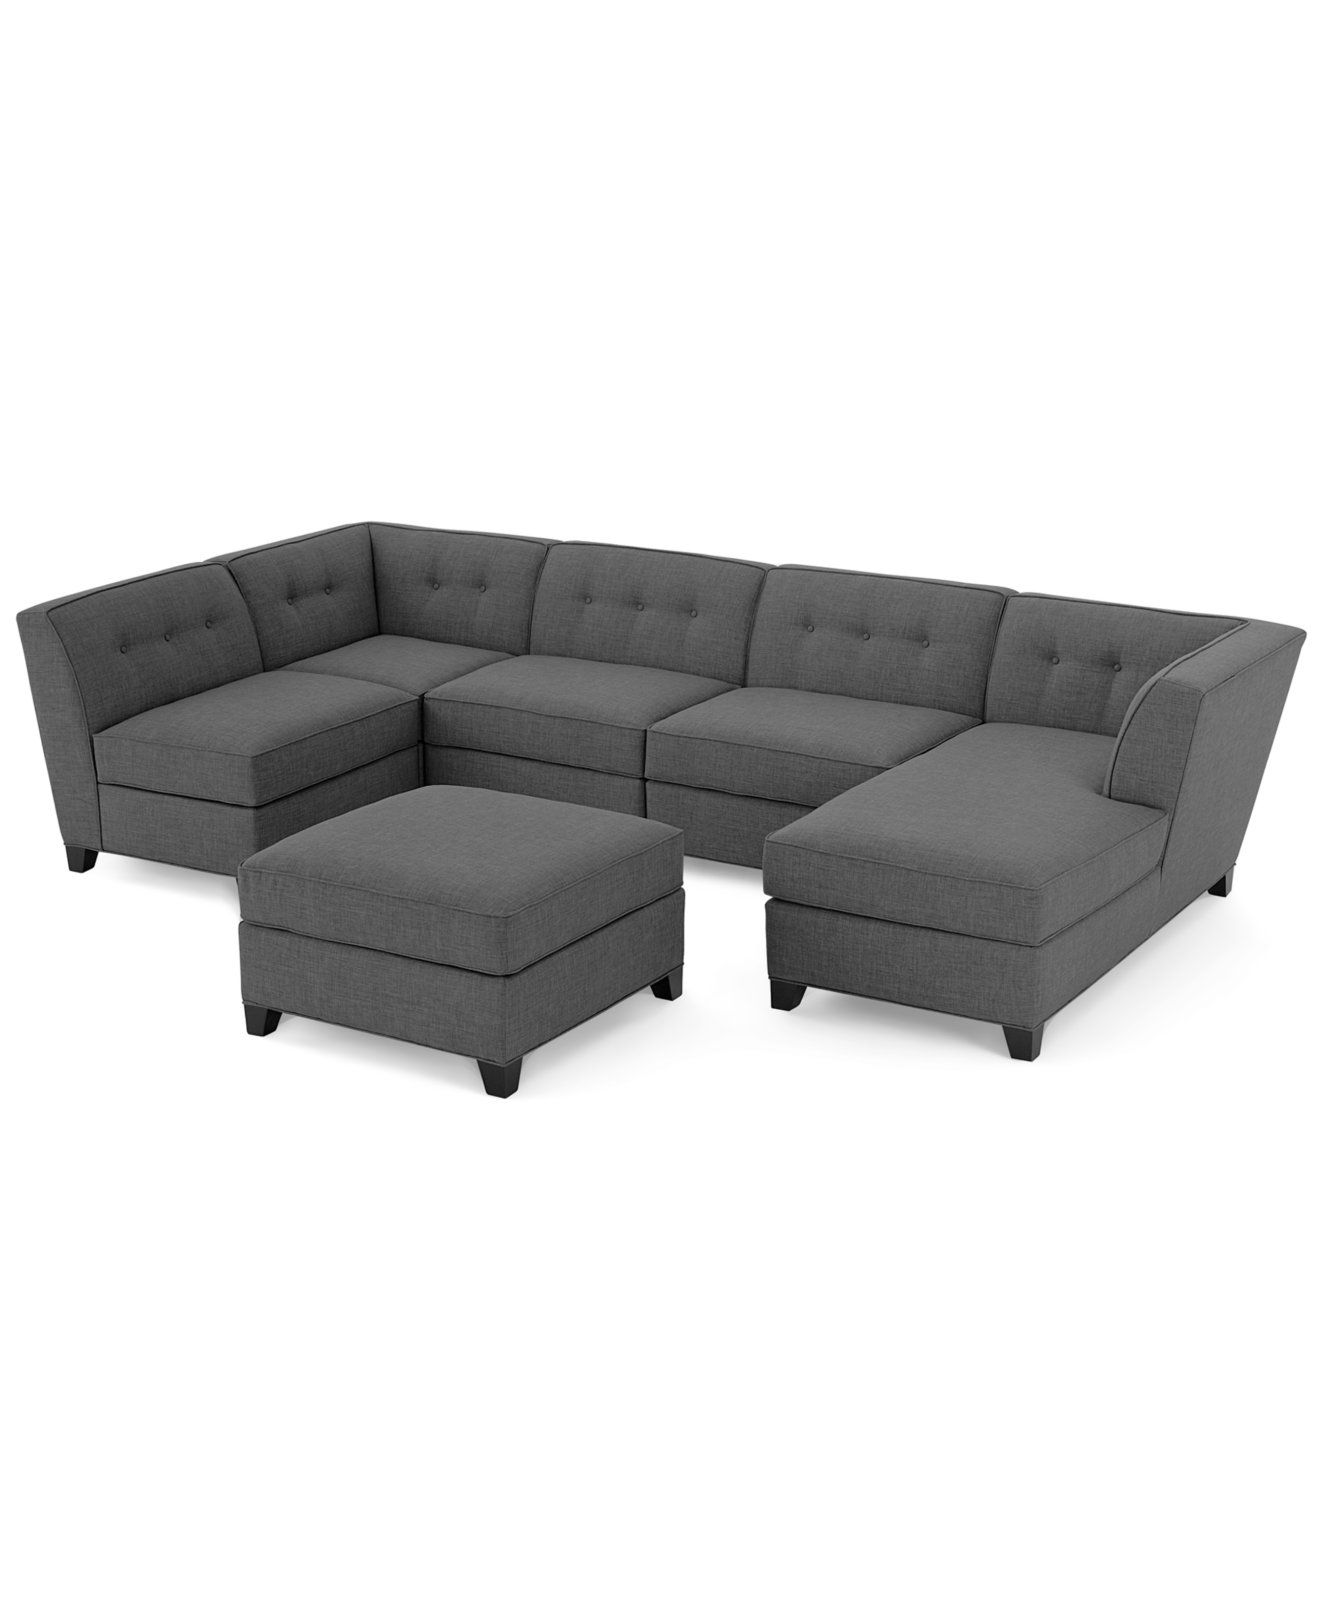 Square Sofa Harper Fabric Modular Sectional Sofa 6 Piece Square Corner Unit